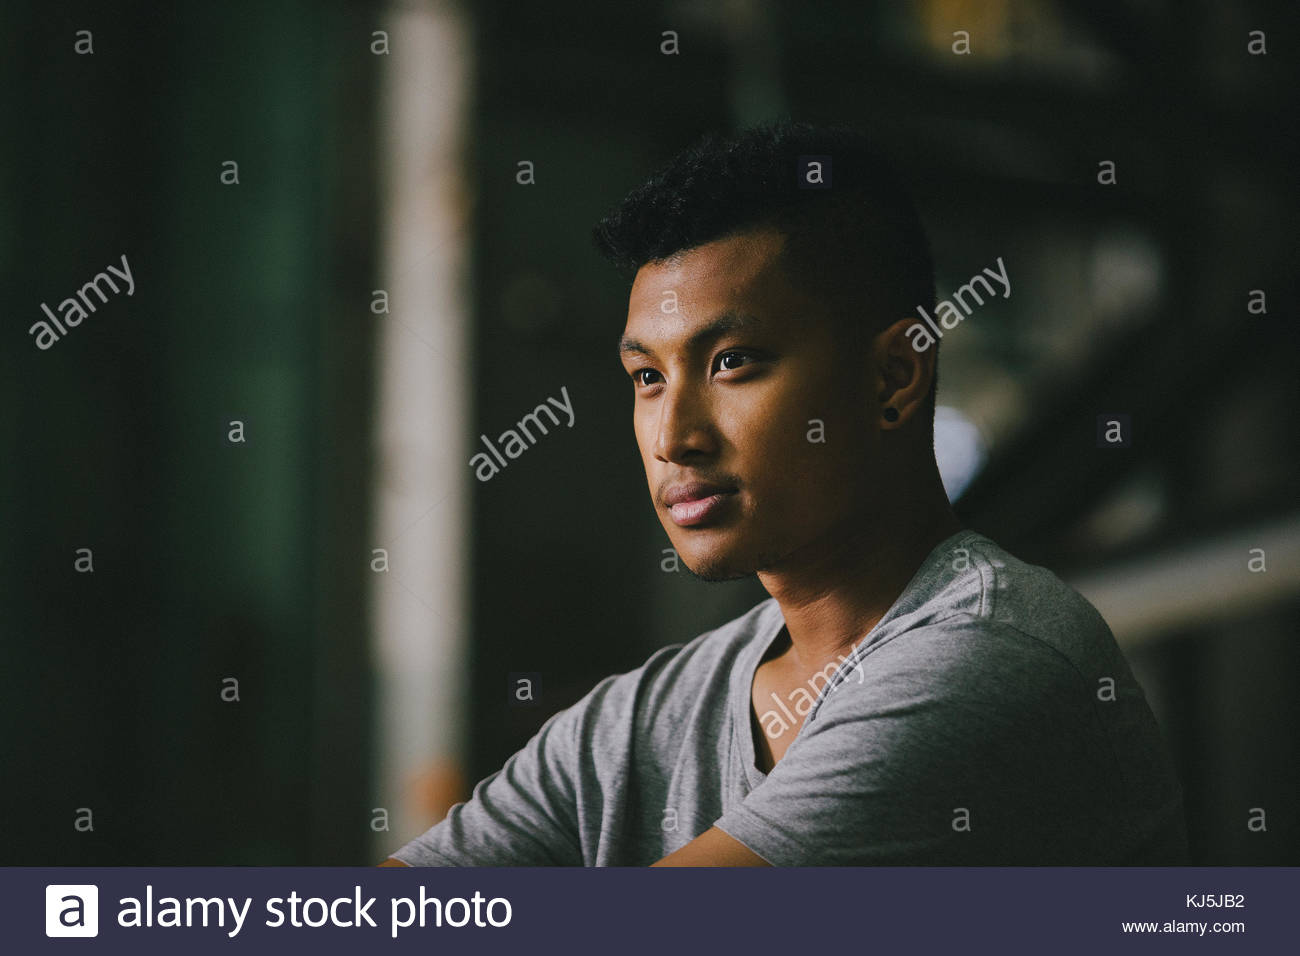 Portrait of young man - Stock Image